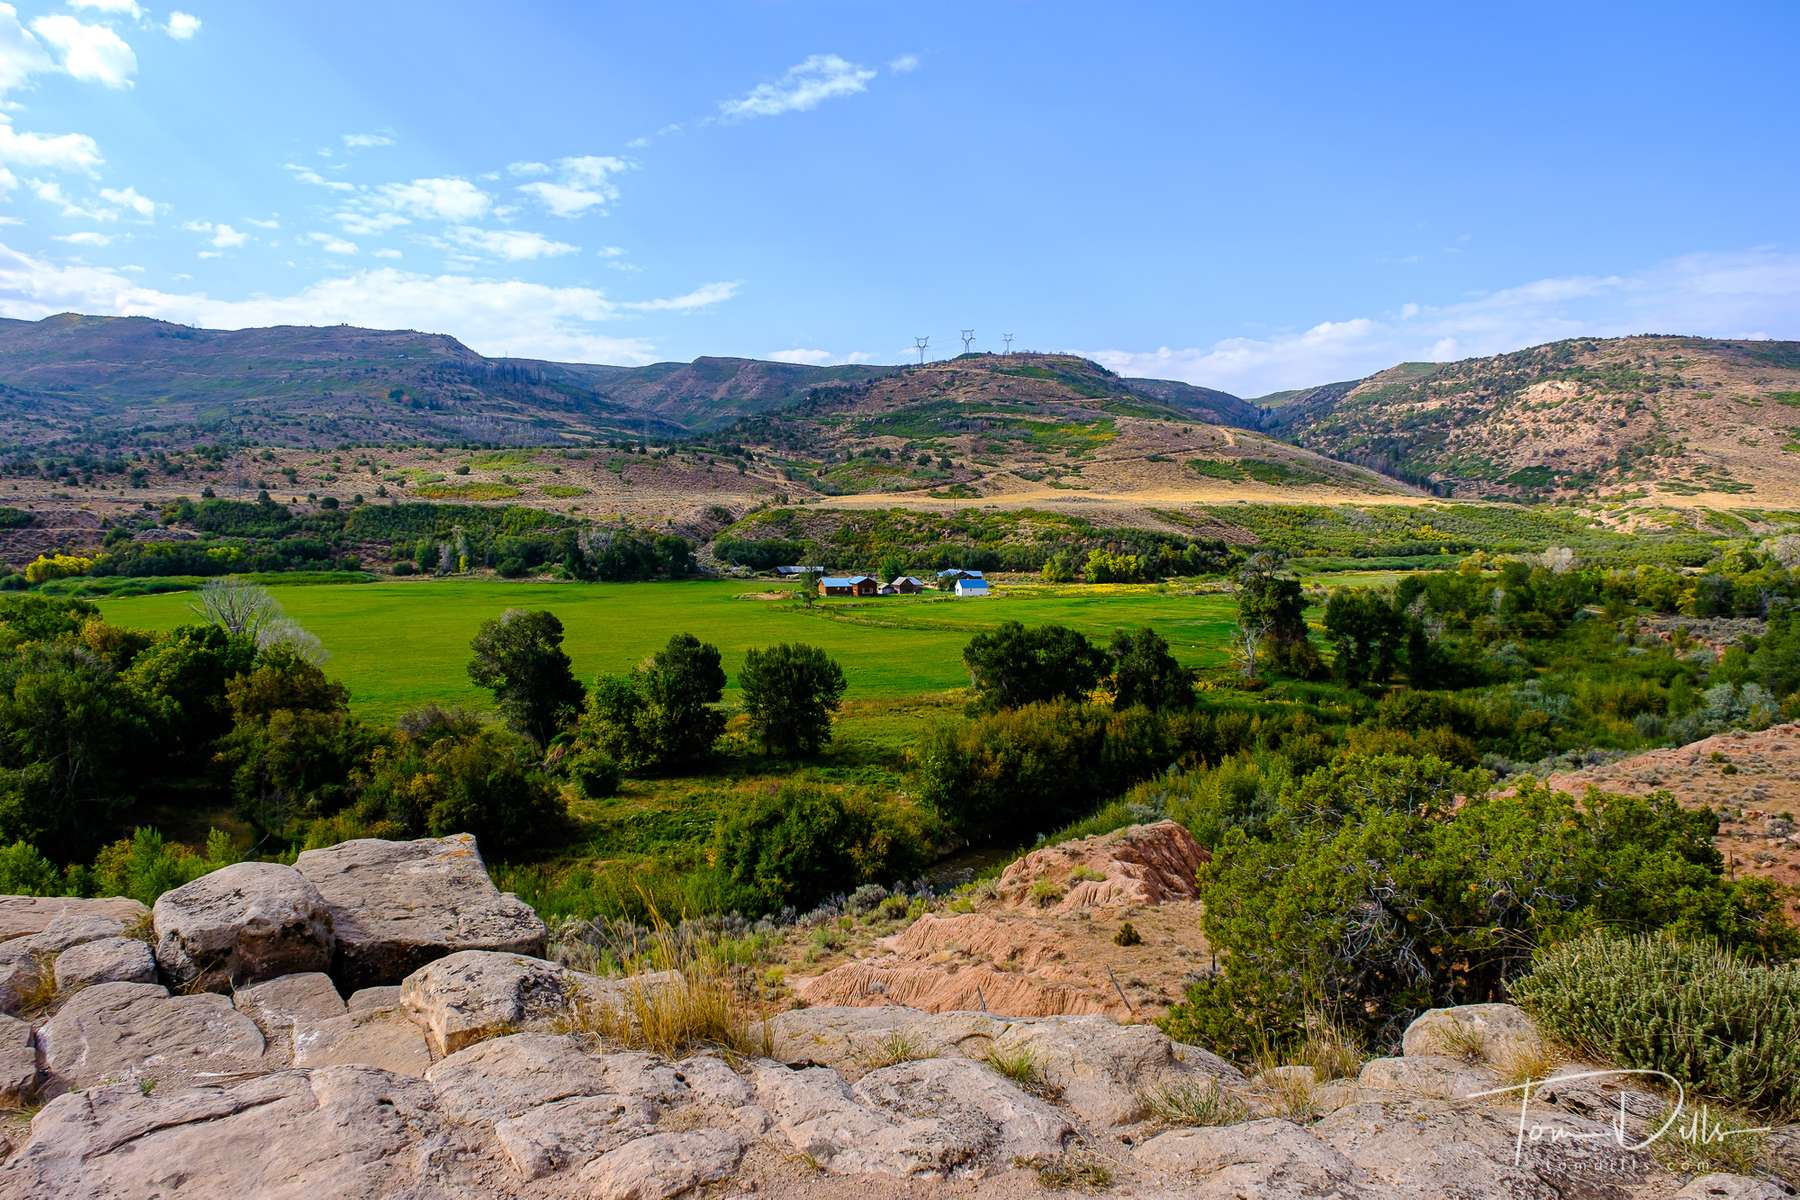 Views from a scenic overlook along US 40 near Fruitland, Utah